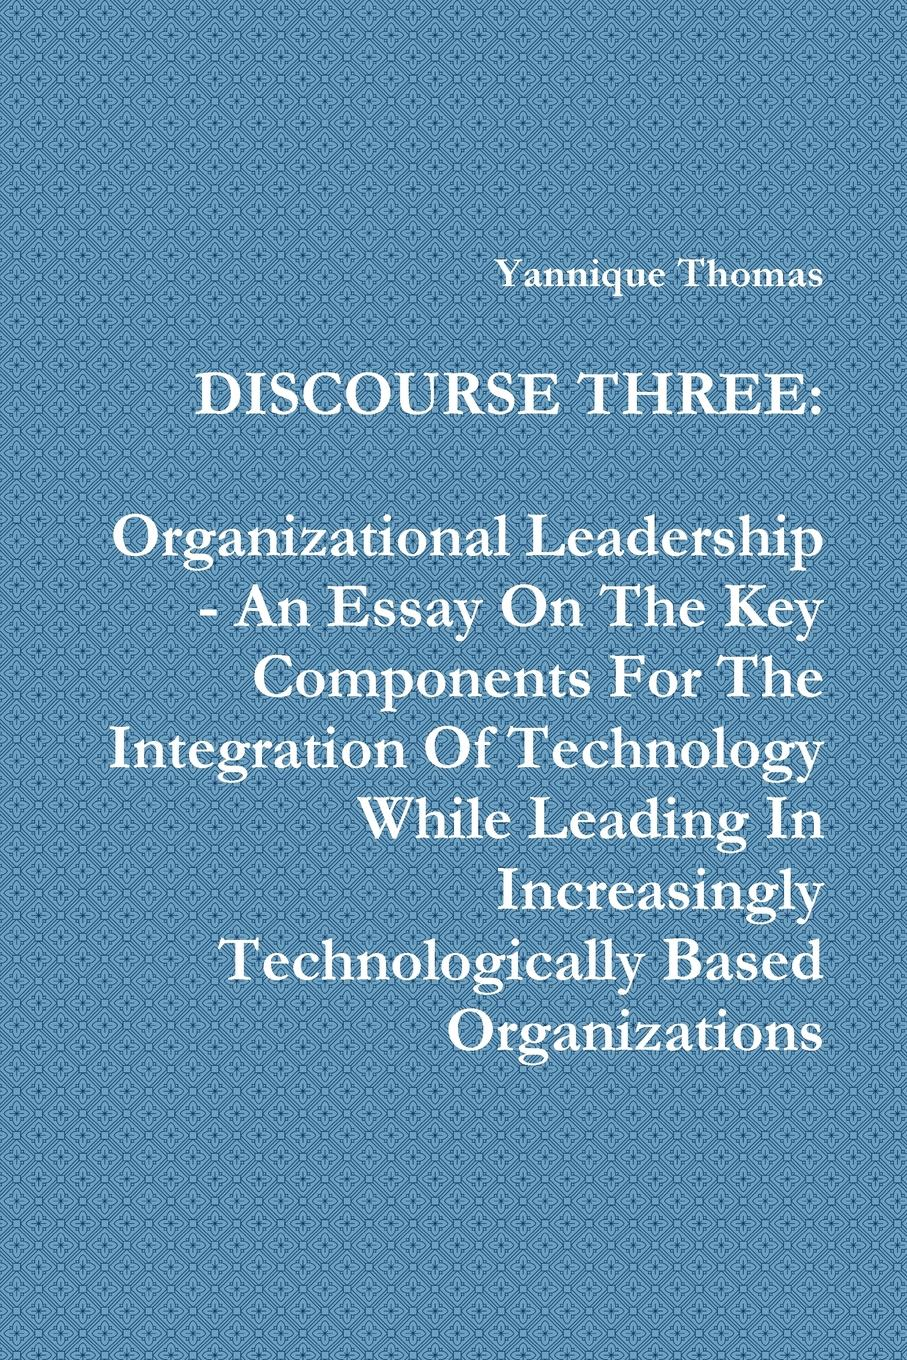 Yannique Thomas Discourse Three. Organizational Leadership - An Essay On The Key Components For The Integration Of Technology While Leading In Increasingly Technologically Based Organizations thomas kolditz a in extremis leadership leading as if your life depended on it